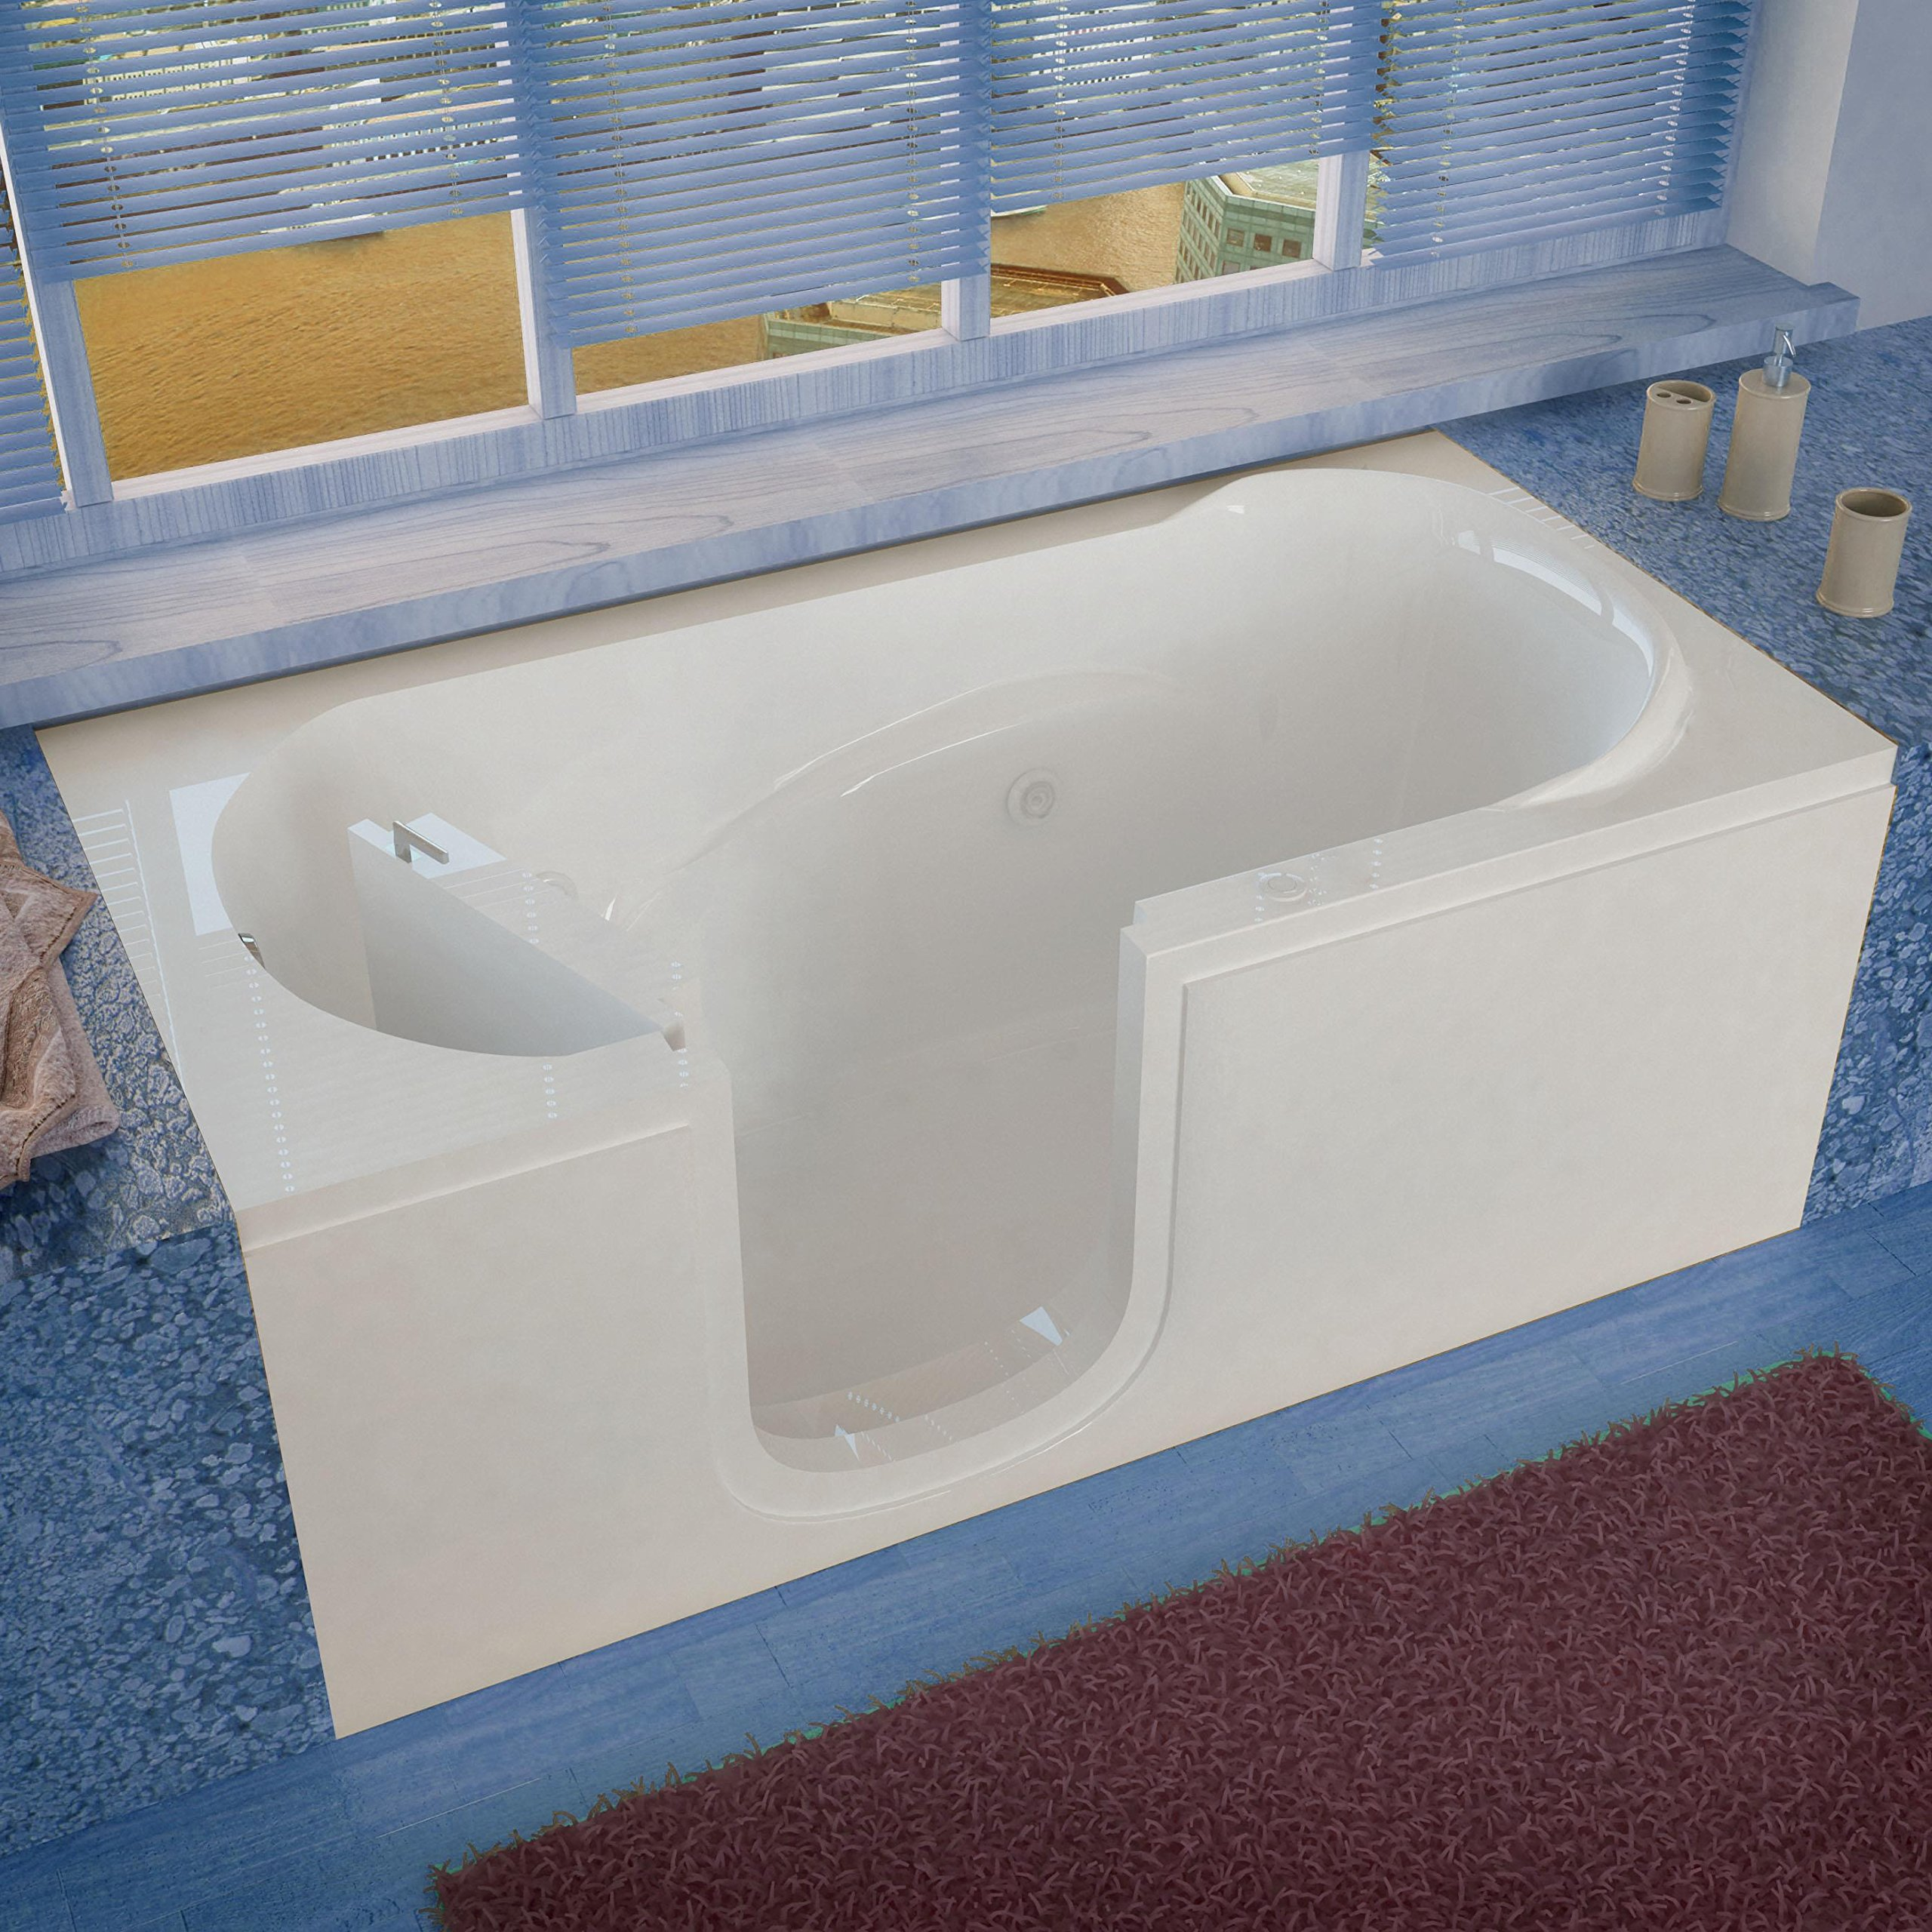 Spa World Venzi Vz3060silwh Rectangular Whirlpool Walk-In Bathtub, 30x60, Left Drain, White